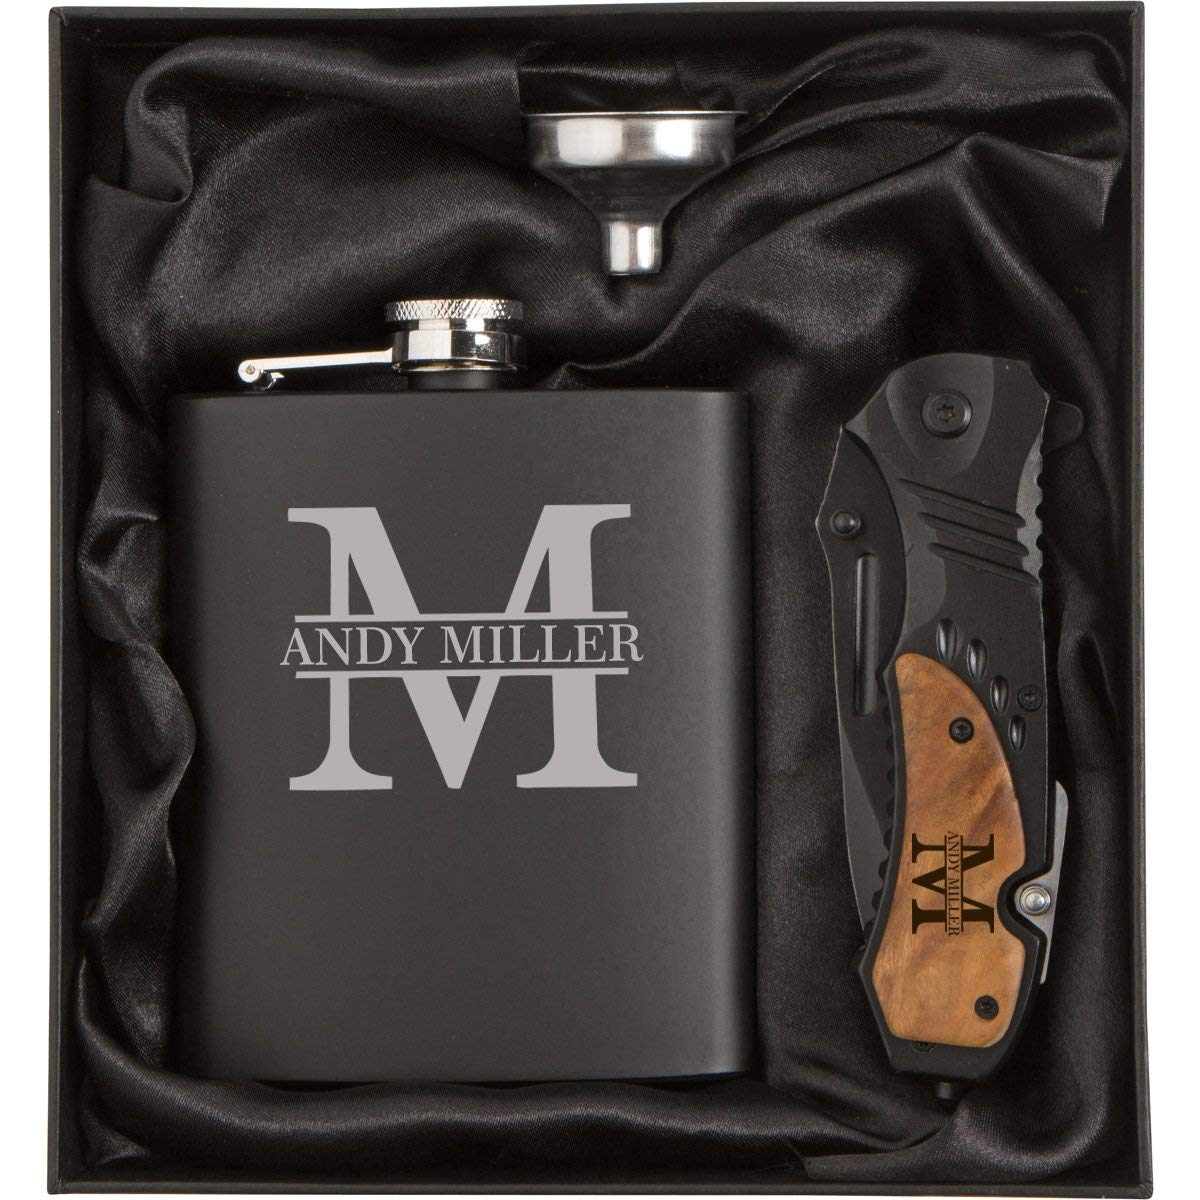 Initial Engraved 7 oz Stainless Steel Flask Funnel Rescue Knife Gift Box Set Custom Personalized